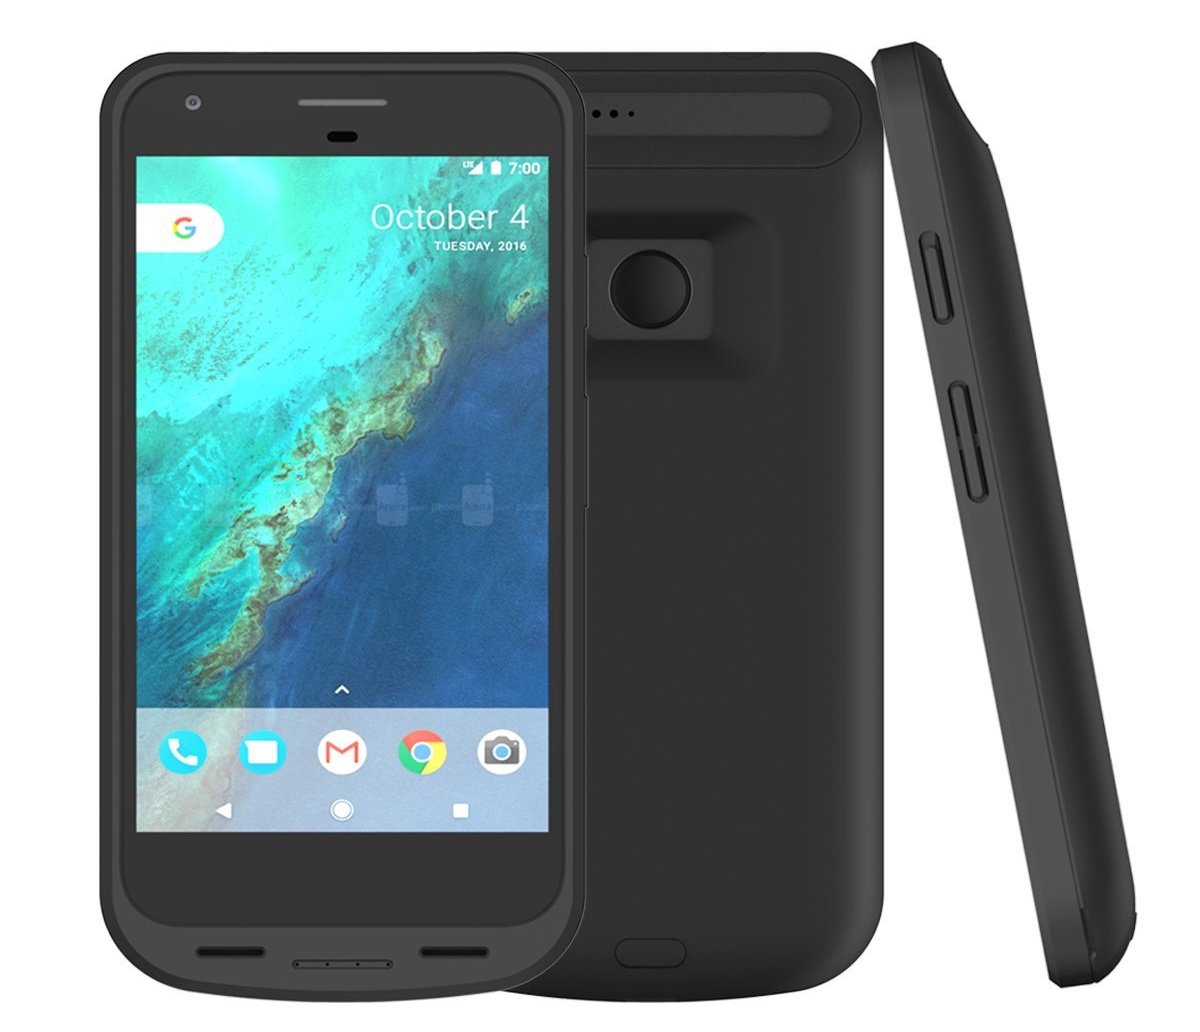 brand new 347dc 6f80d DEAL: Pixel XL 5,000mAh battery case for half the price of Mophie